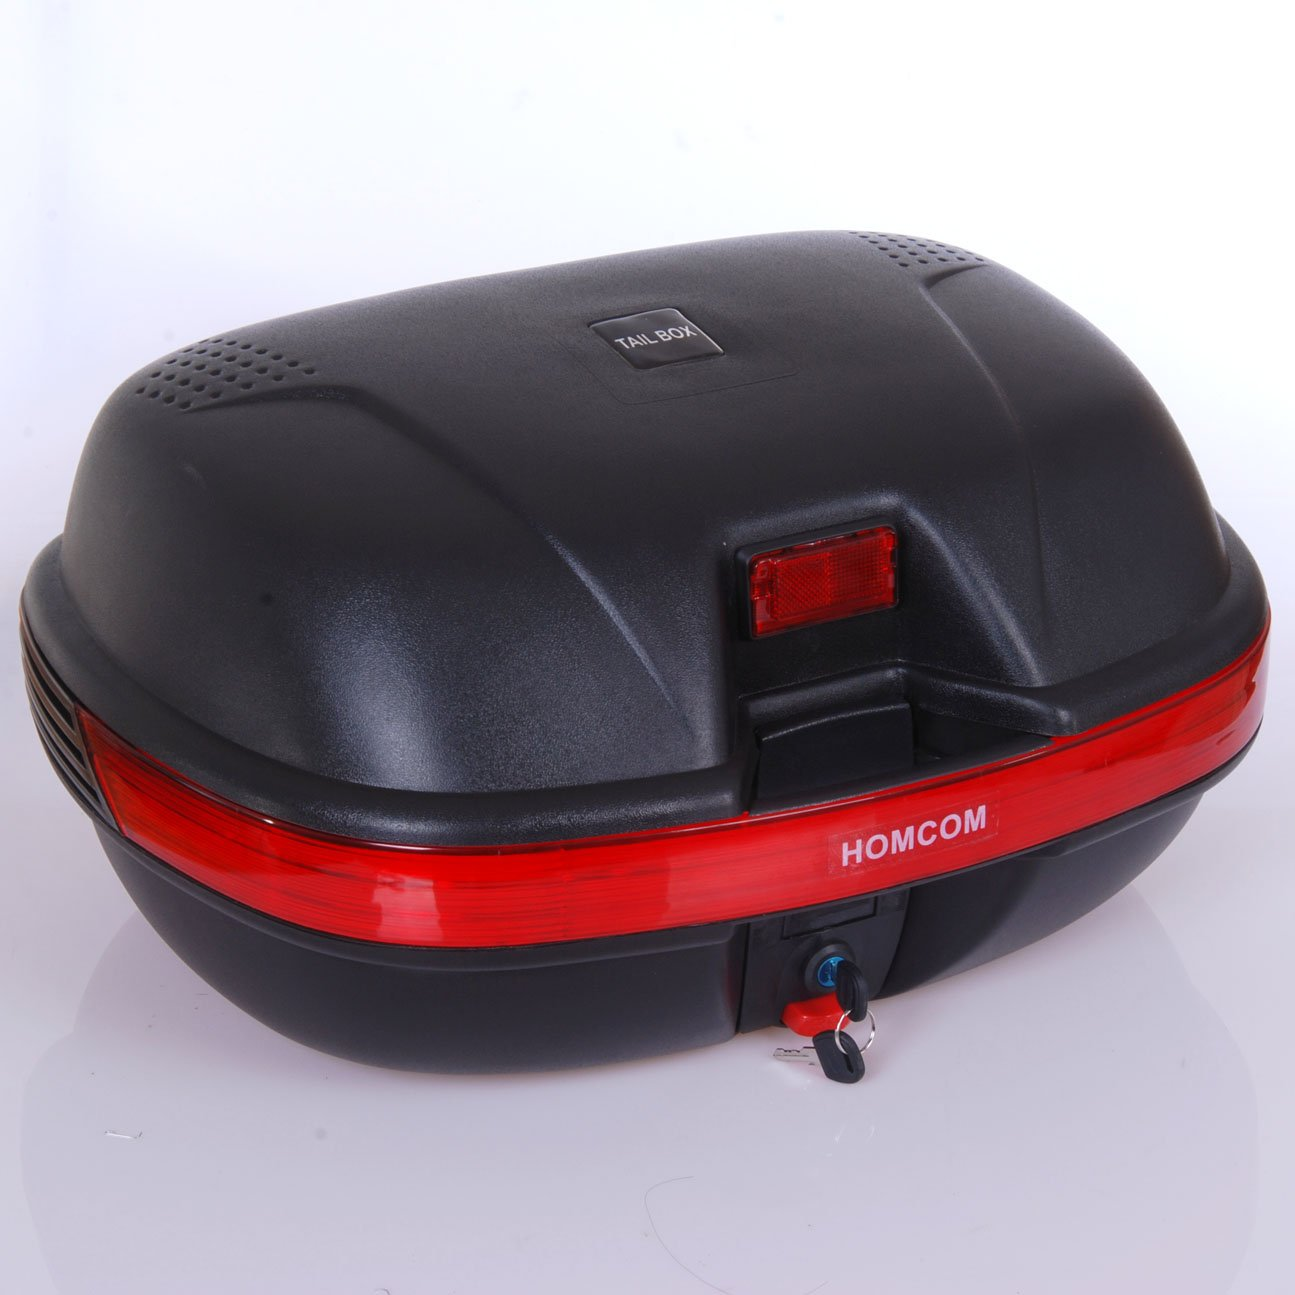 44L HOMCOM Detachable Scooter Motorcycle Trunk Top Case Lock Storage Luggage T Box Black